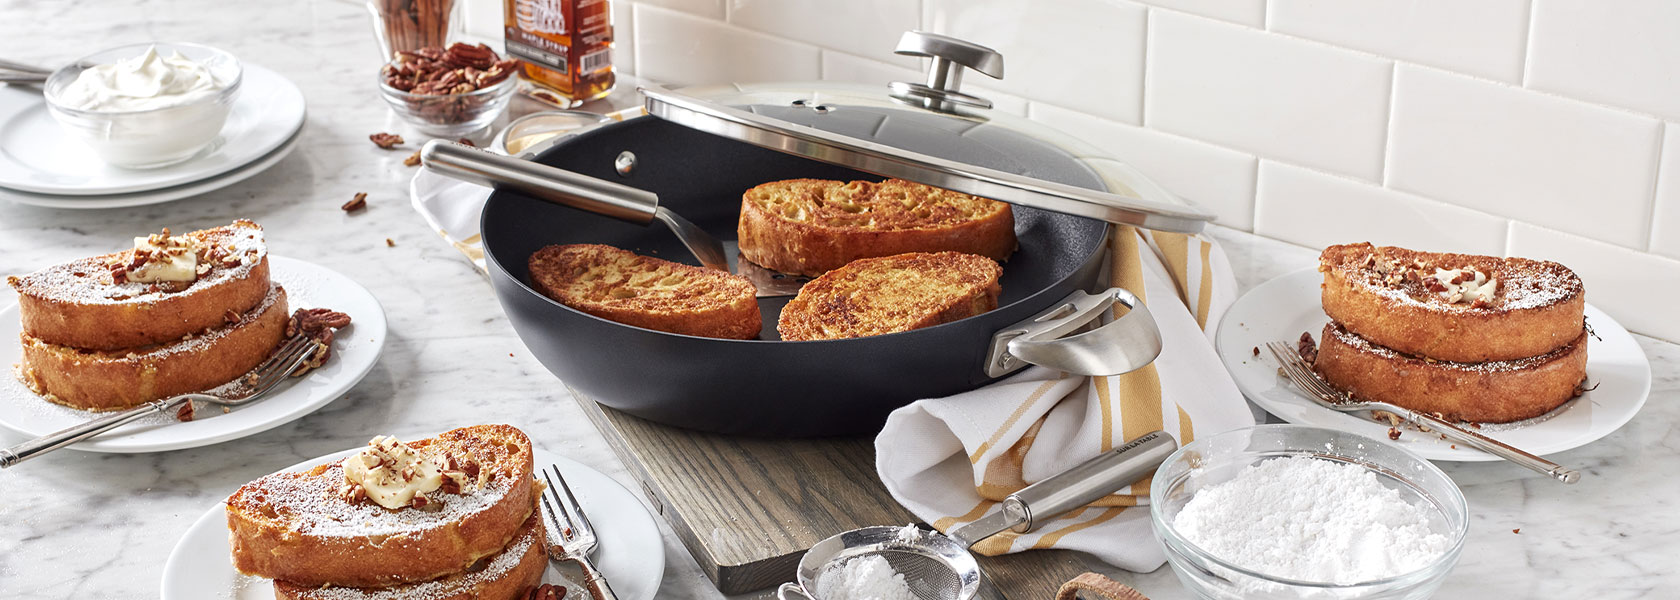 Scanpan Pro S+ nonstick chef's pan with French toast